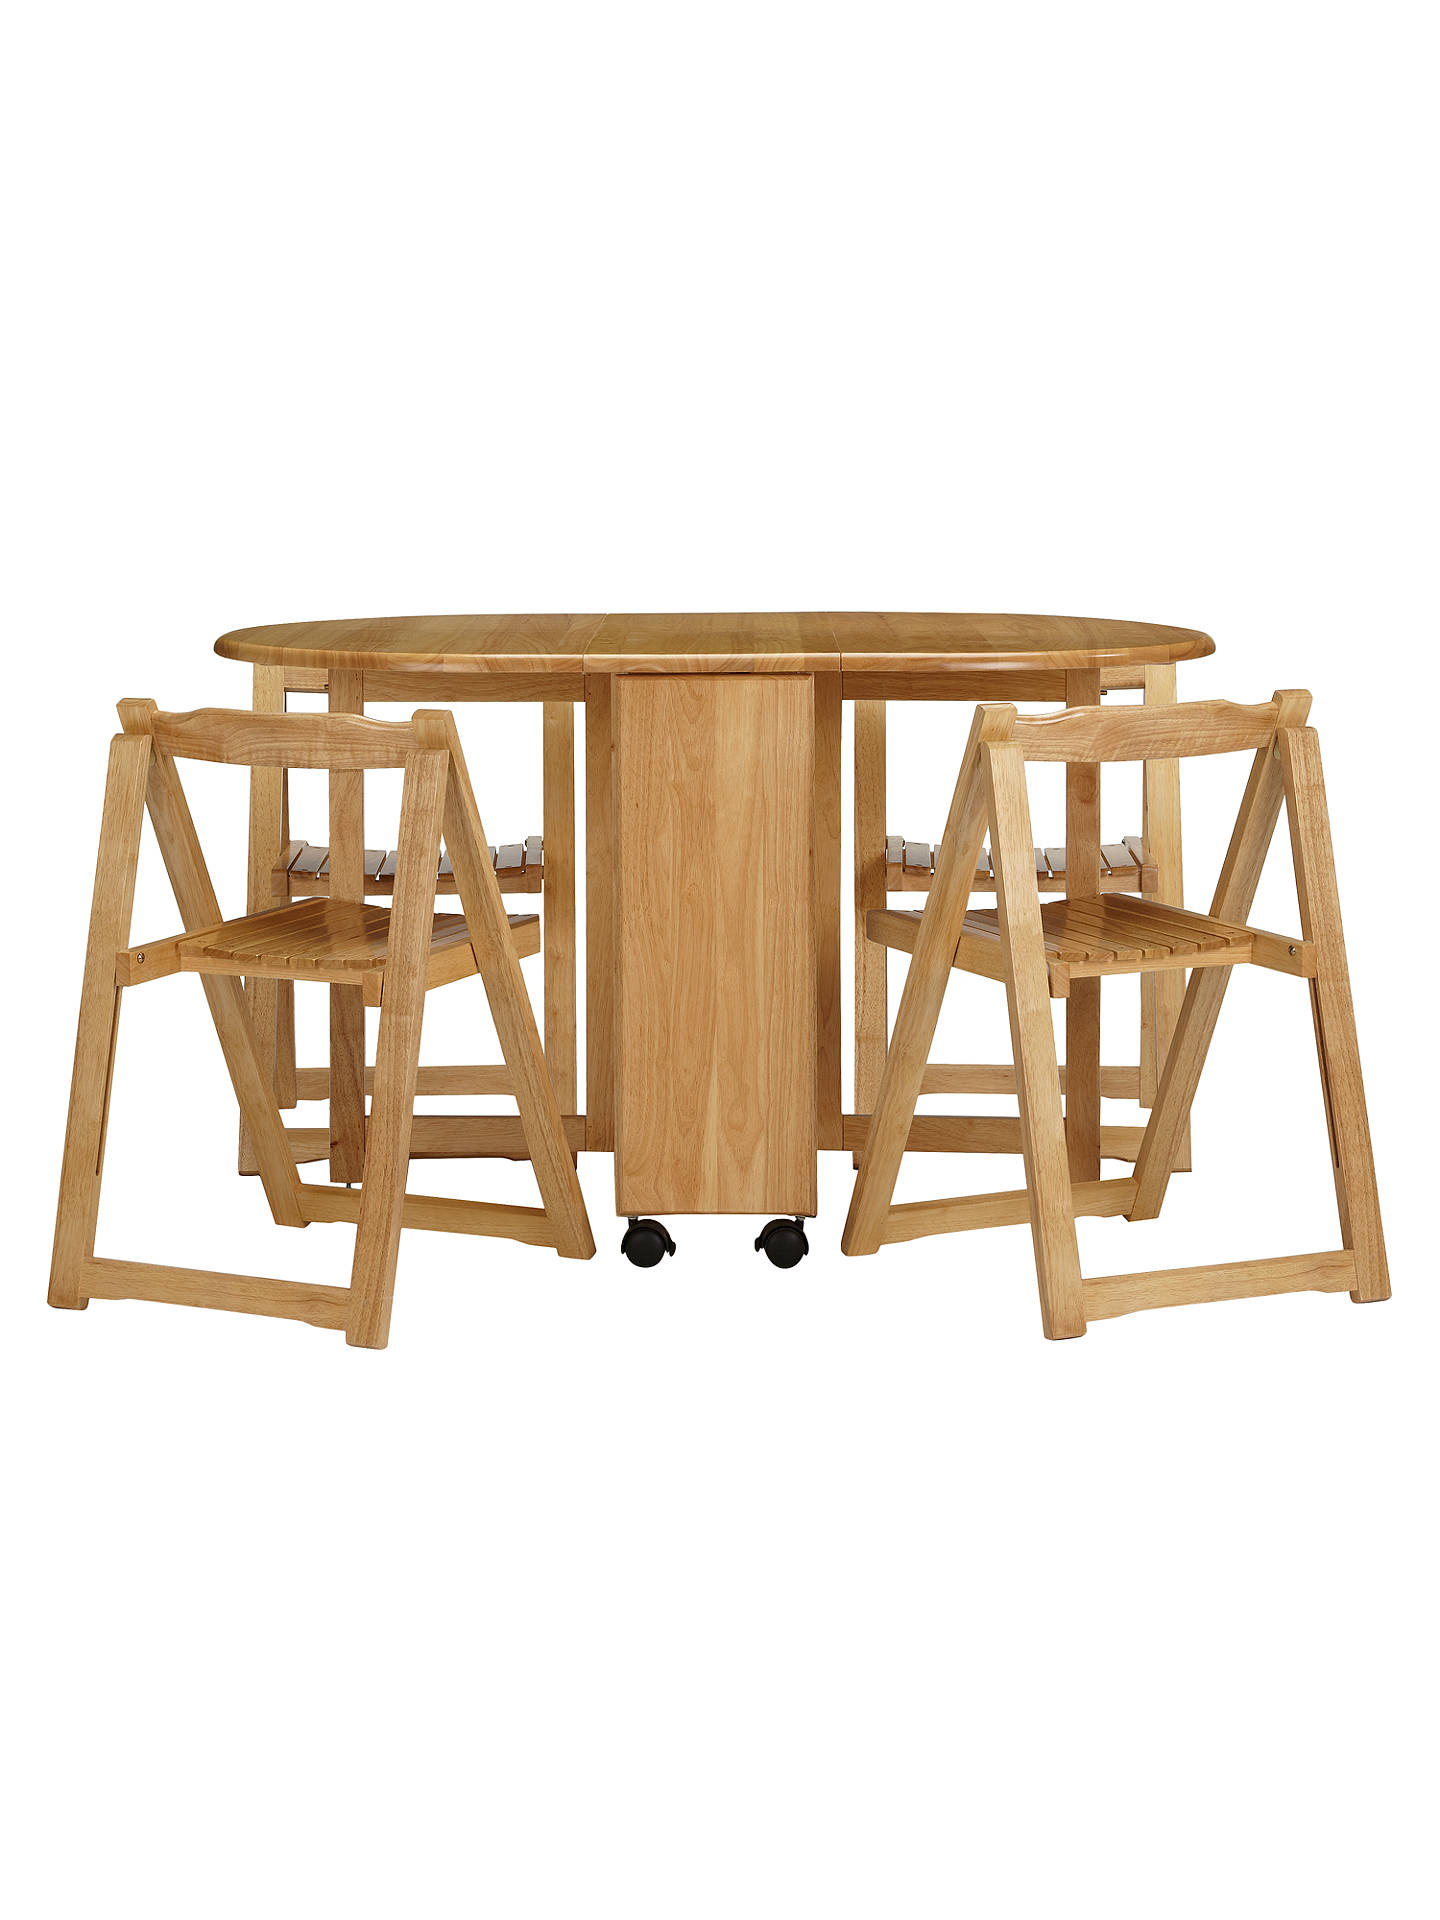 John Lewis Erfly Drop Leaf Folding Dining Table And Four Chairs Natural Online At